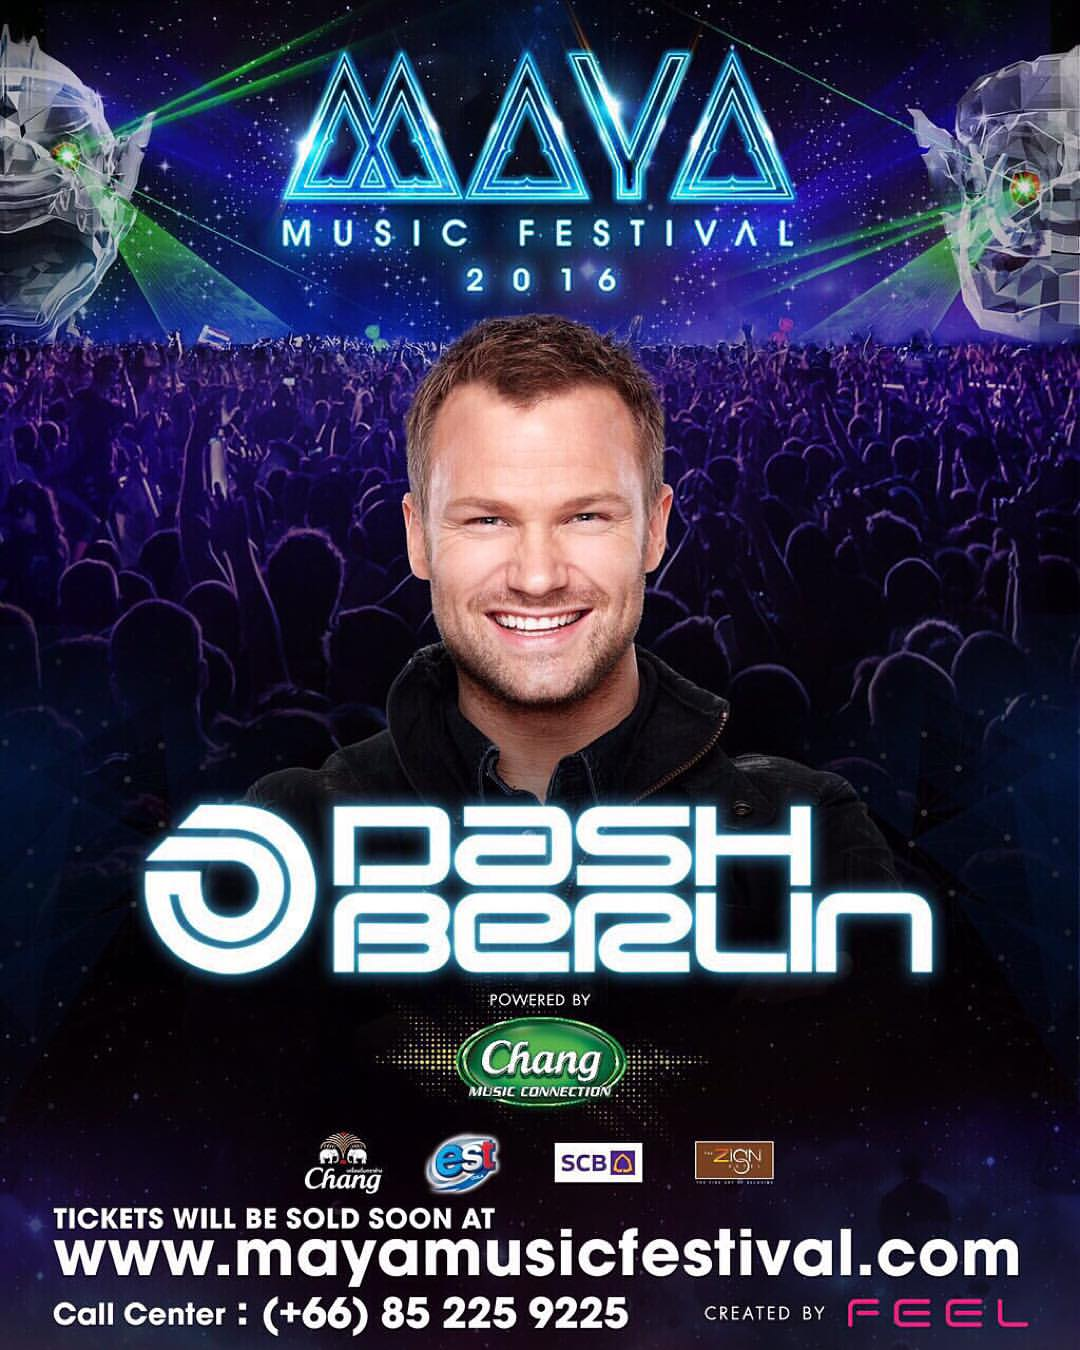 MAYA Music festival   Dash Berlin